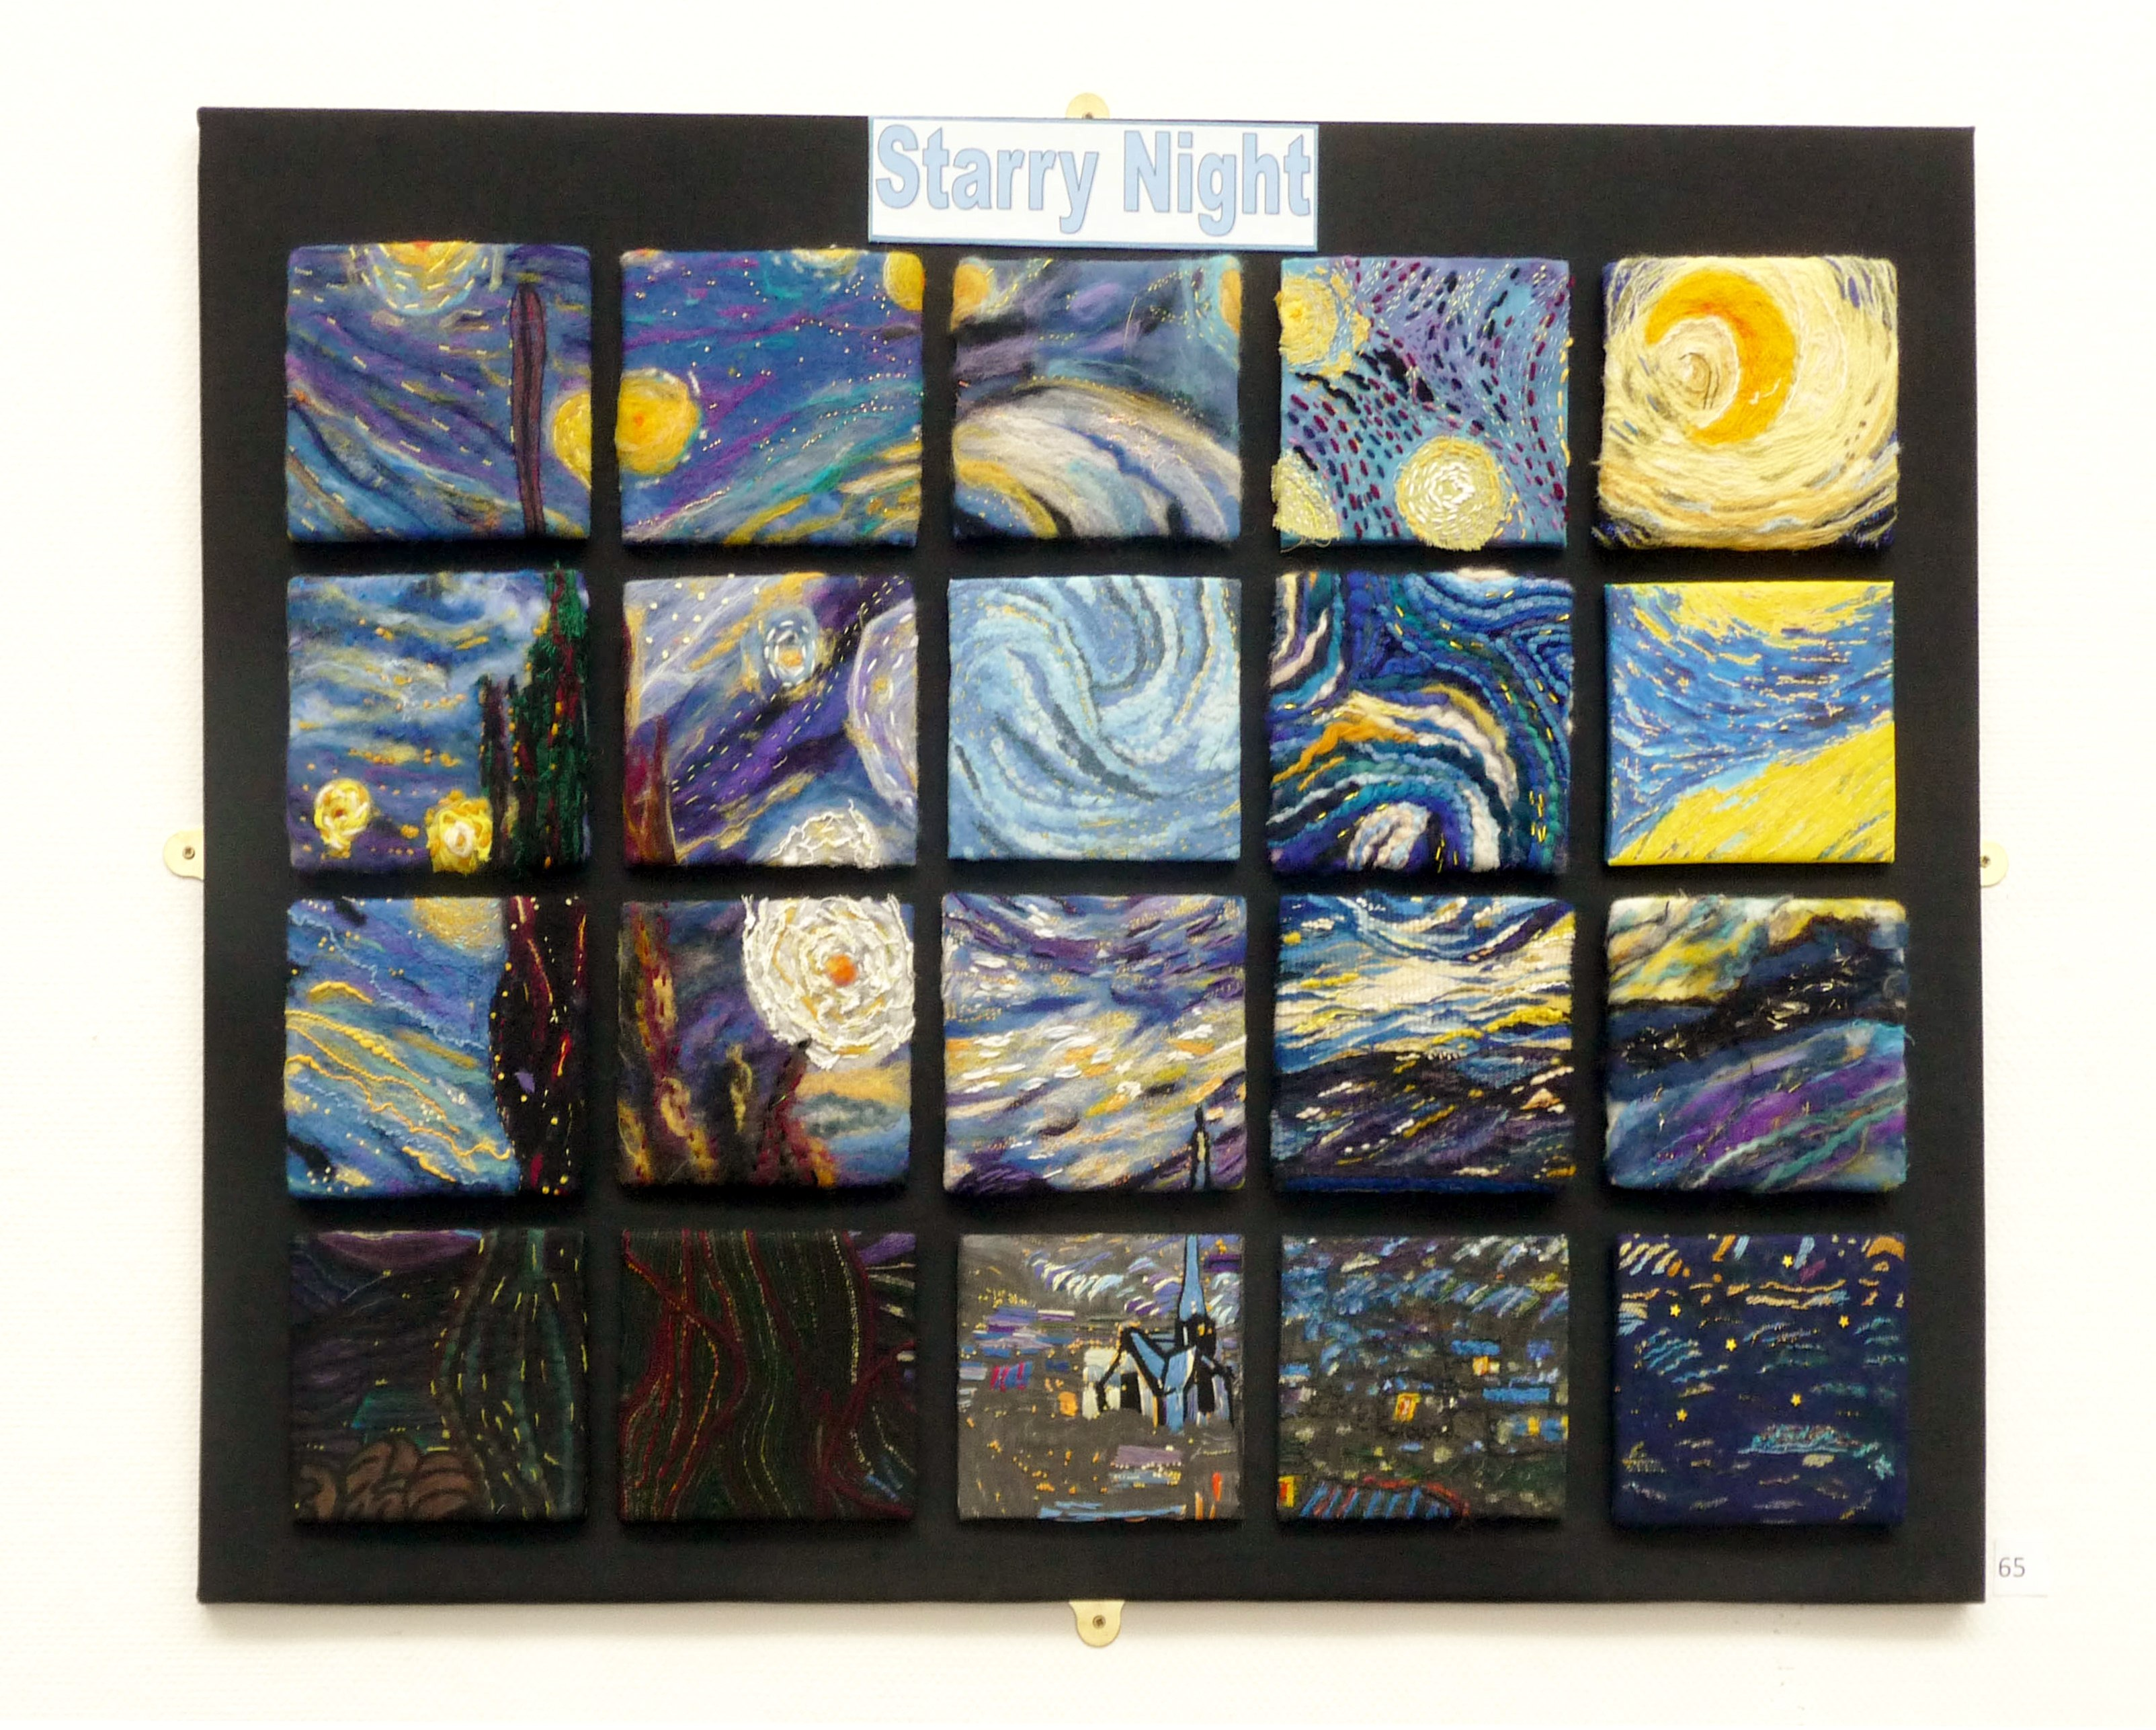 STARRY NIGHT,  N. Lonsdale EG Branch Joint Project, 4x5 in grids based on Vincent Van Gogh's painting, variuos embroidery techniques were used